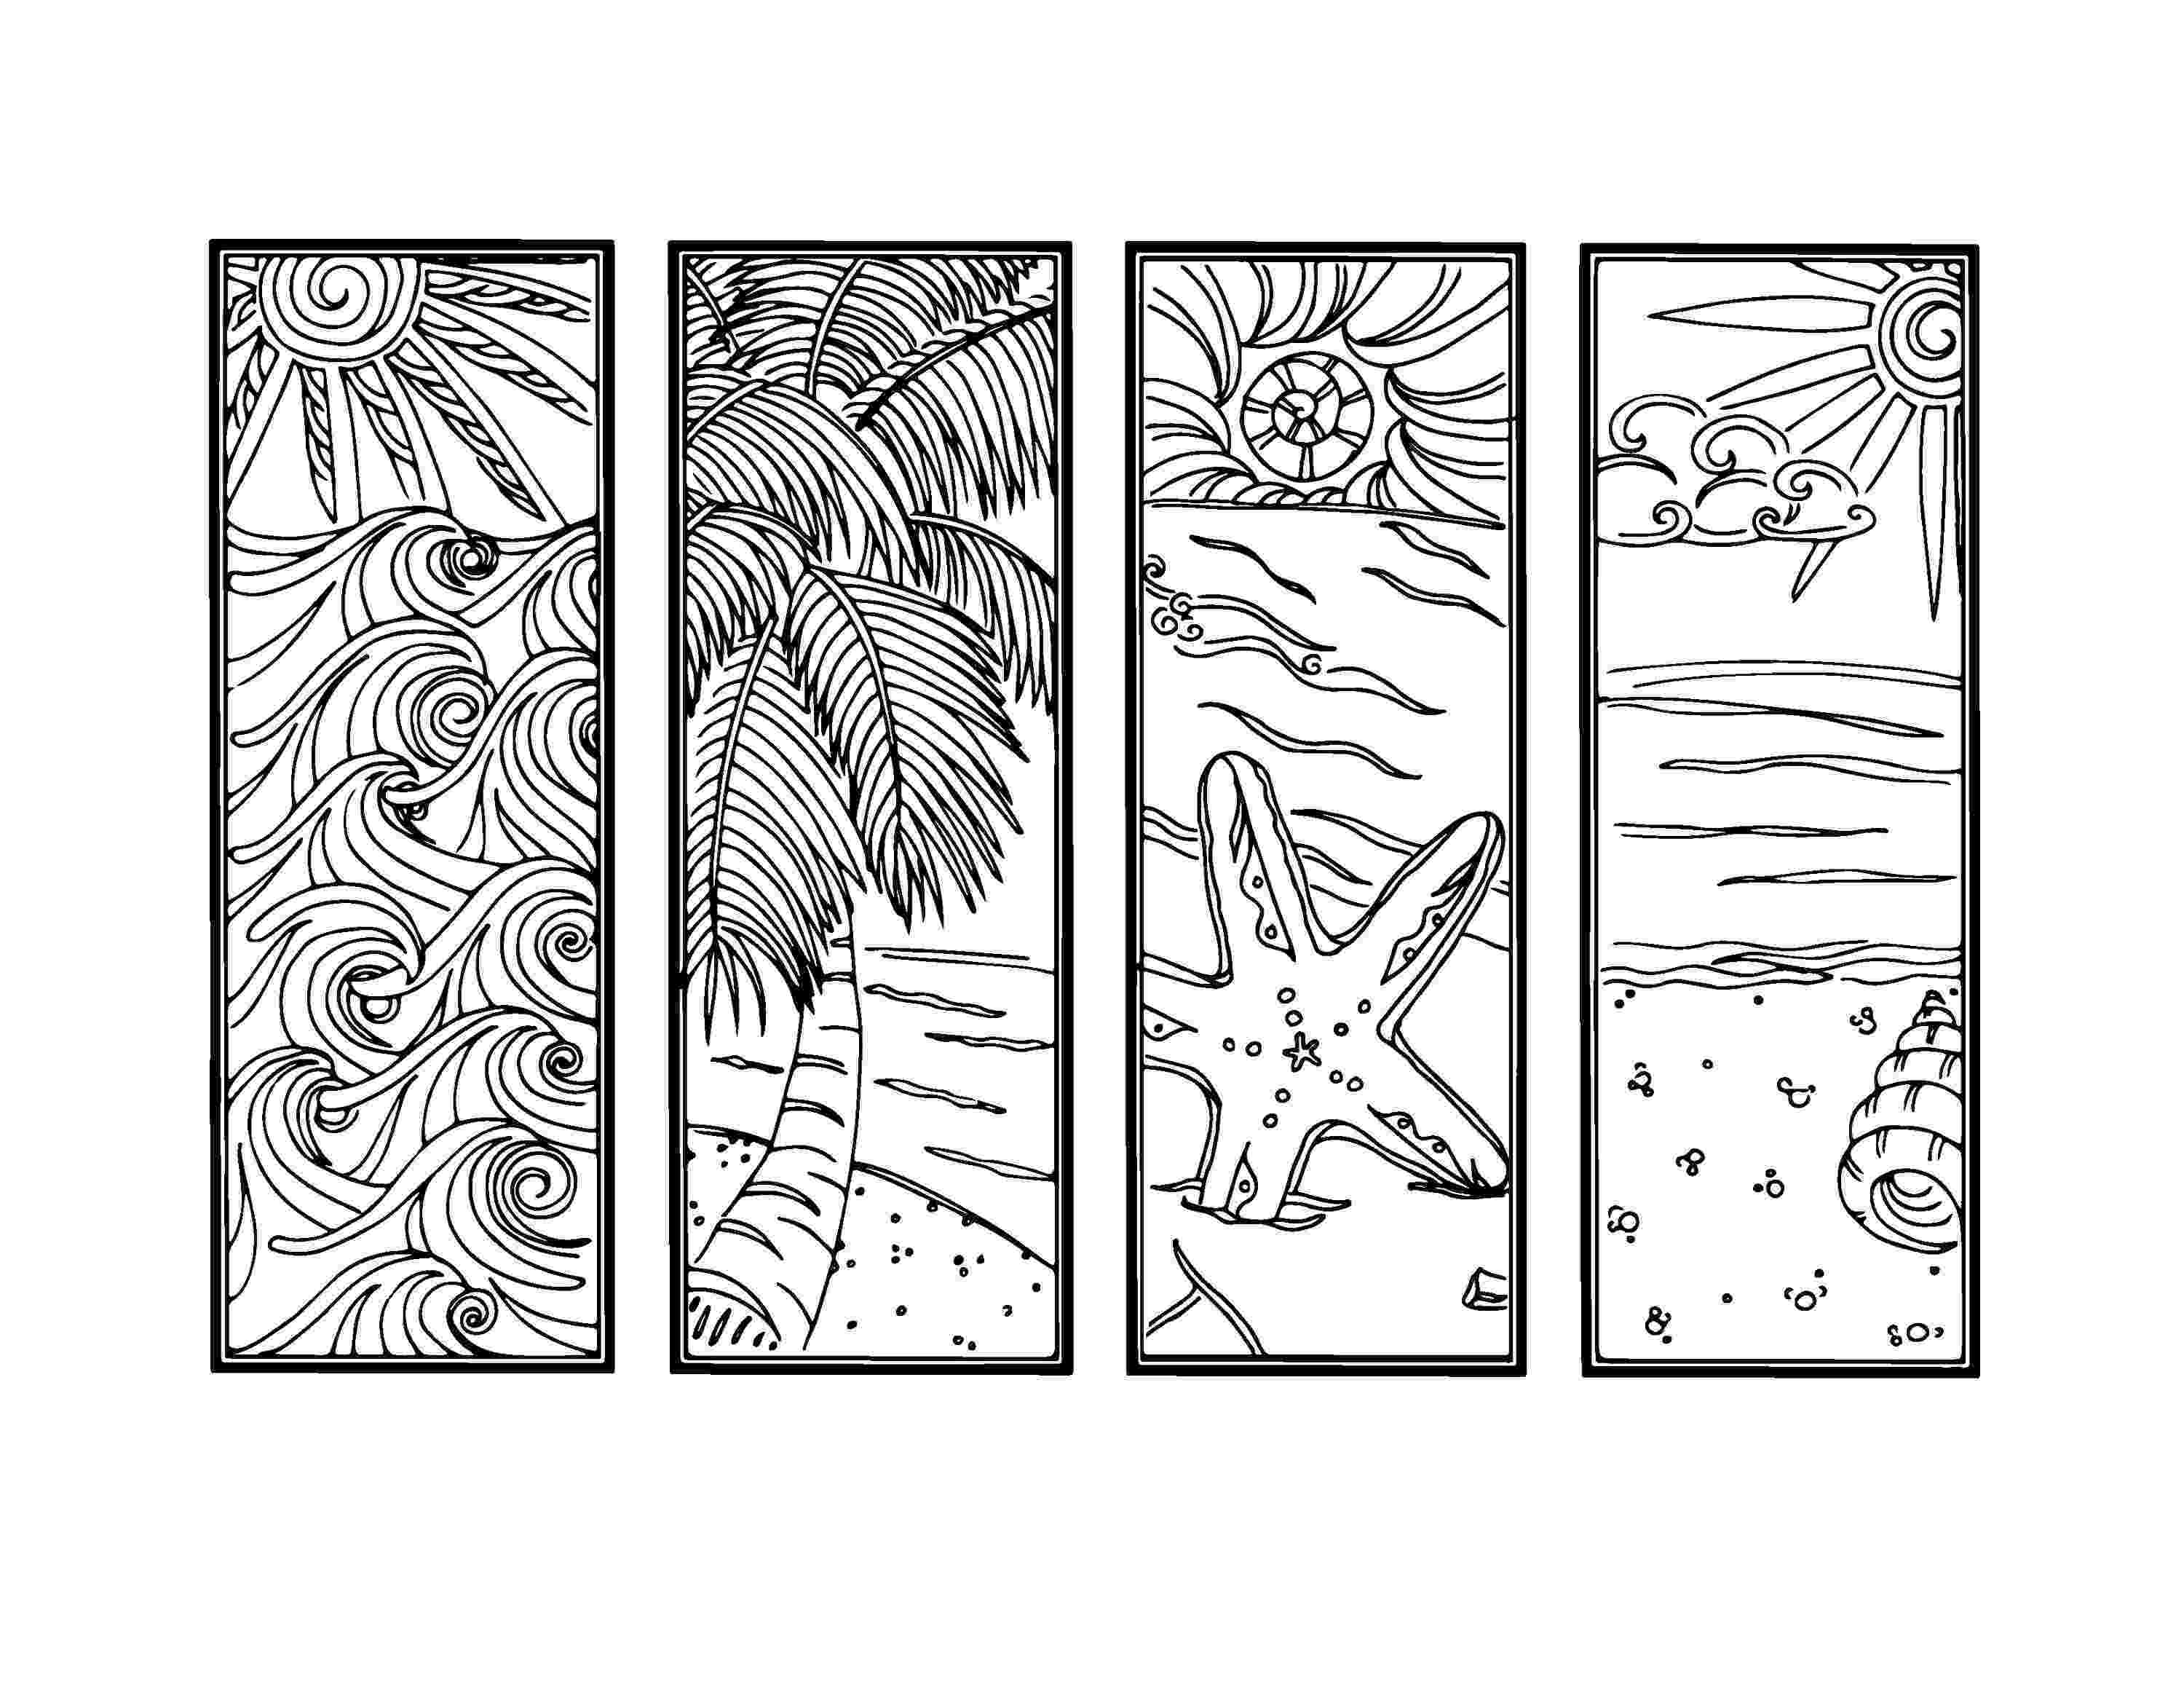 printable colouring bookmarks printable coloring bookmark templates with four designs plus colouring bookmarks printable